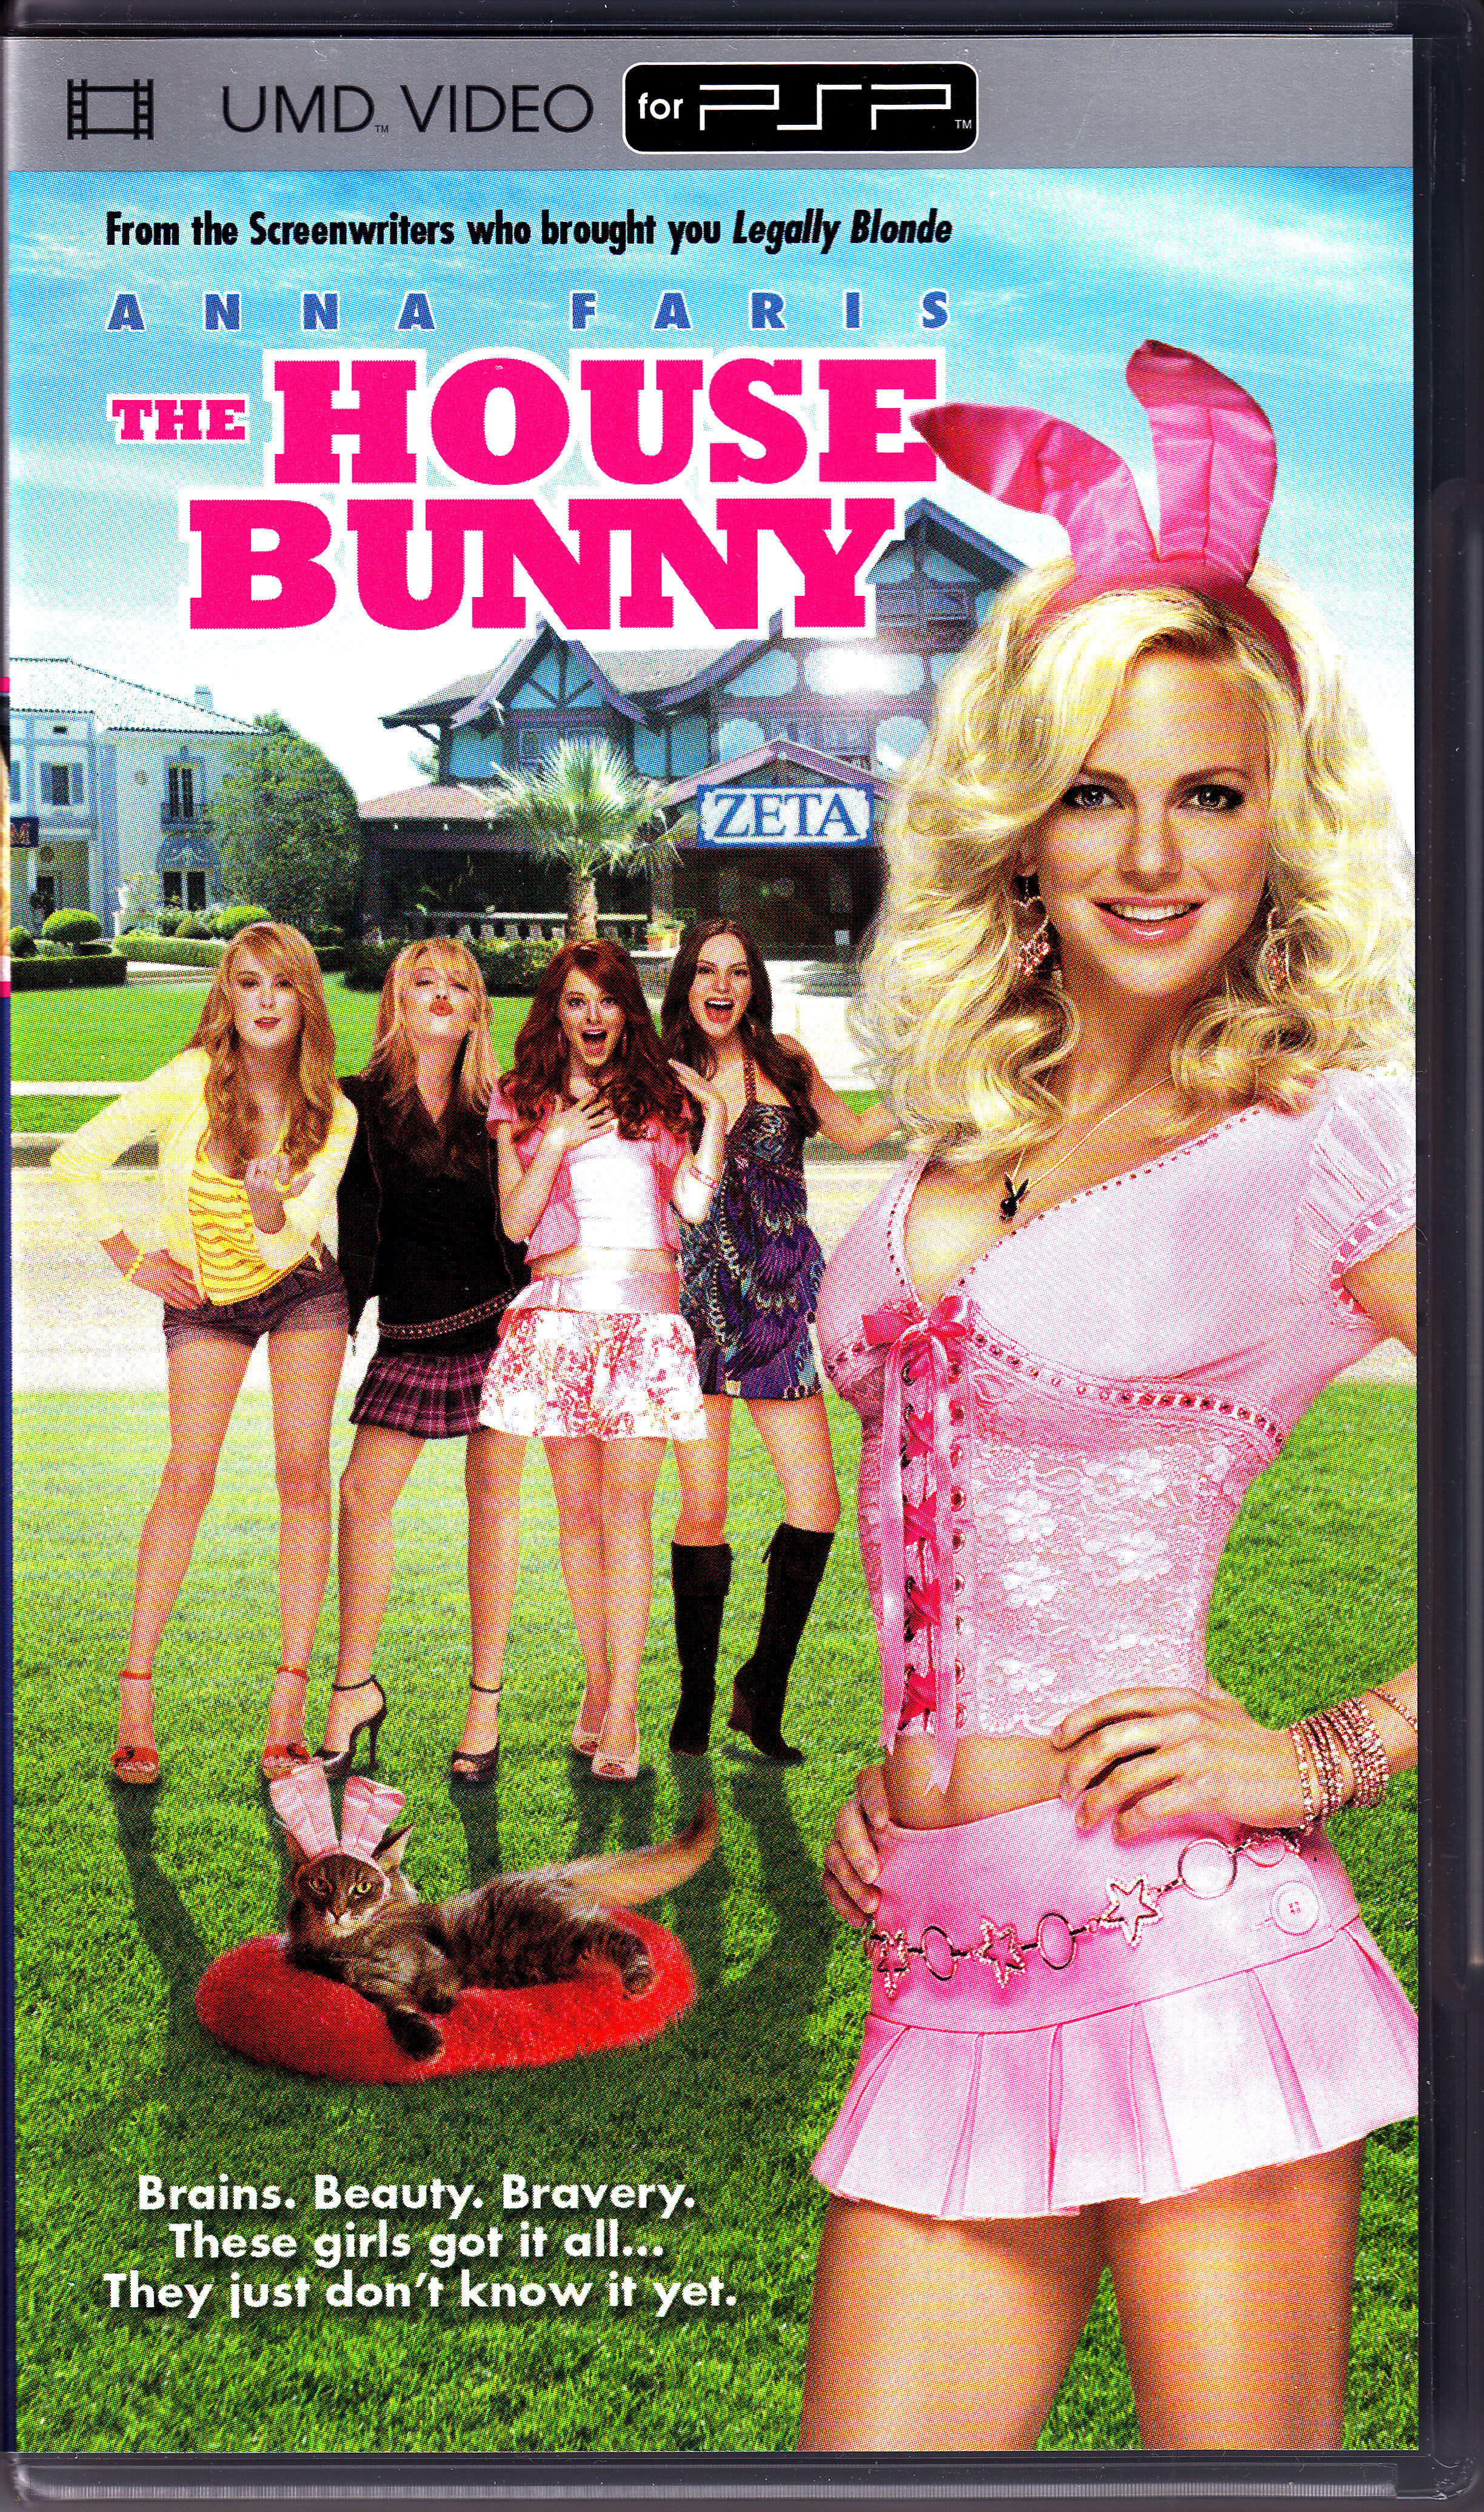 house bunny movie review With 'the house bunny', anna faris' streak of great performances in pretty bad films continues.